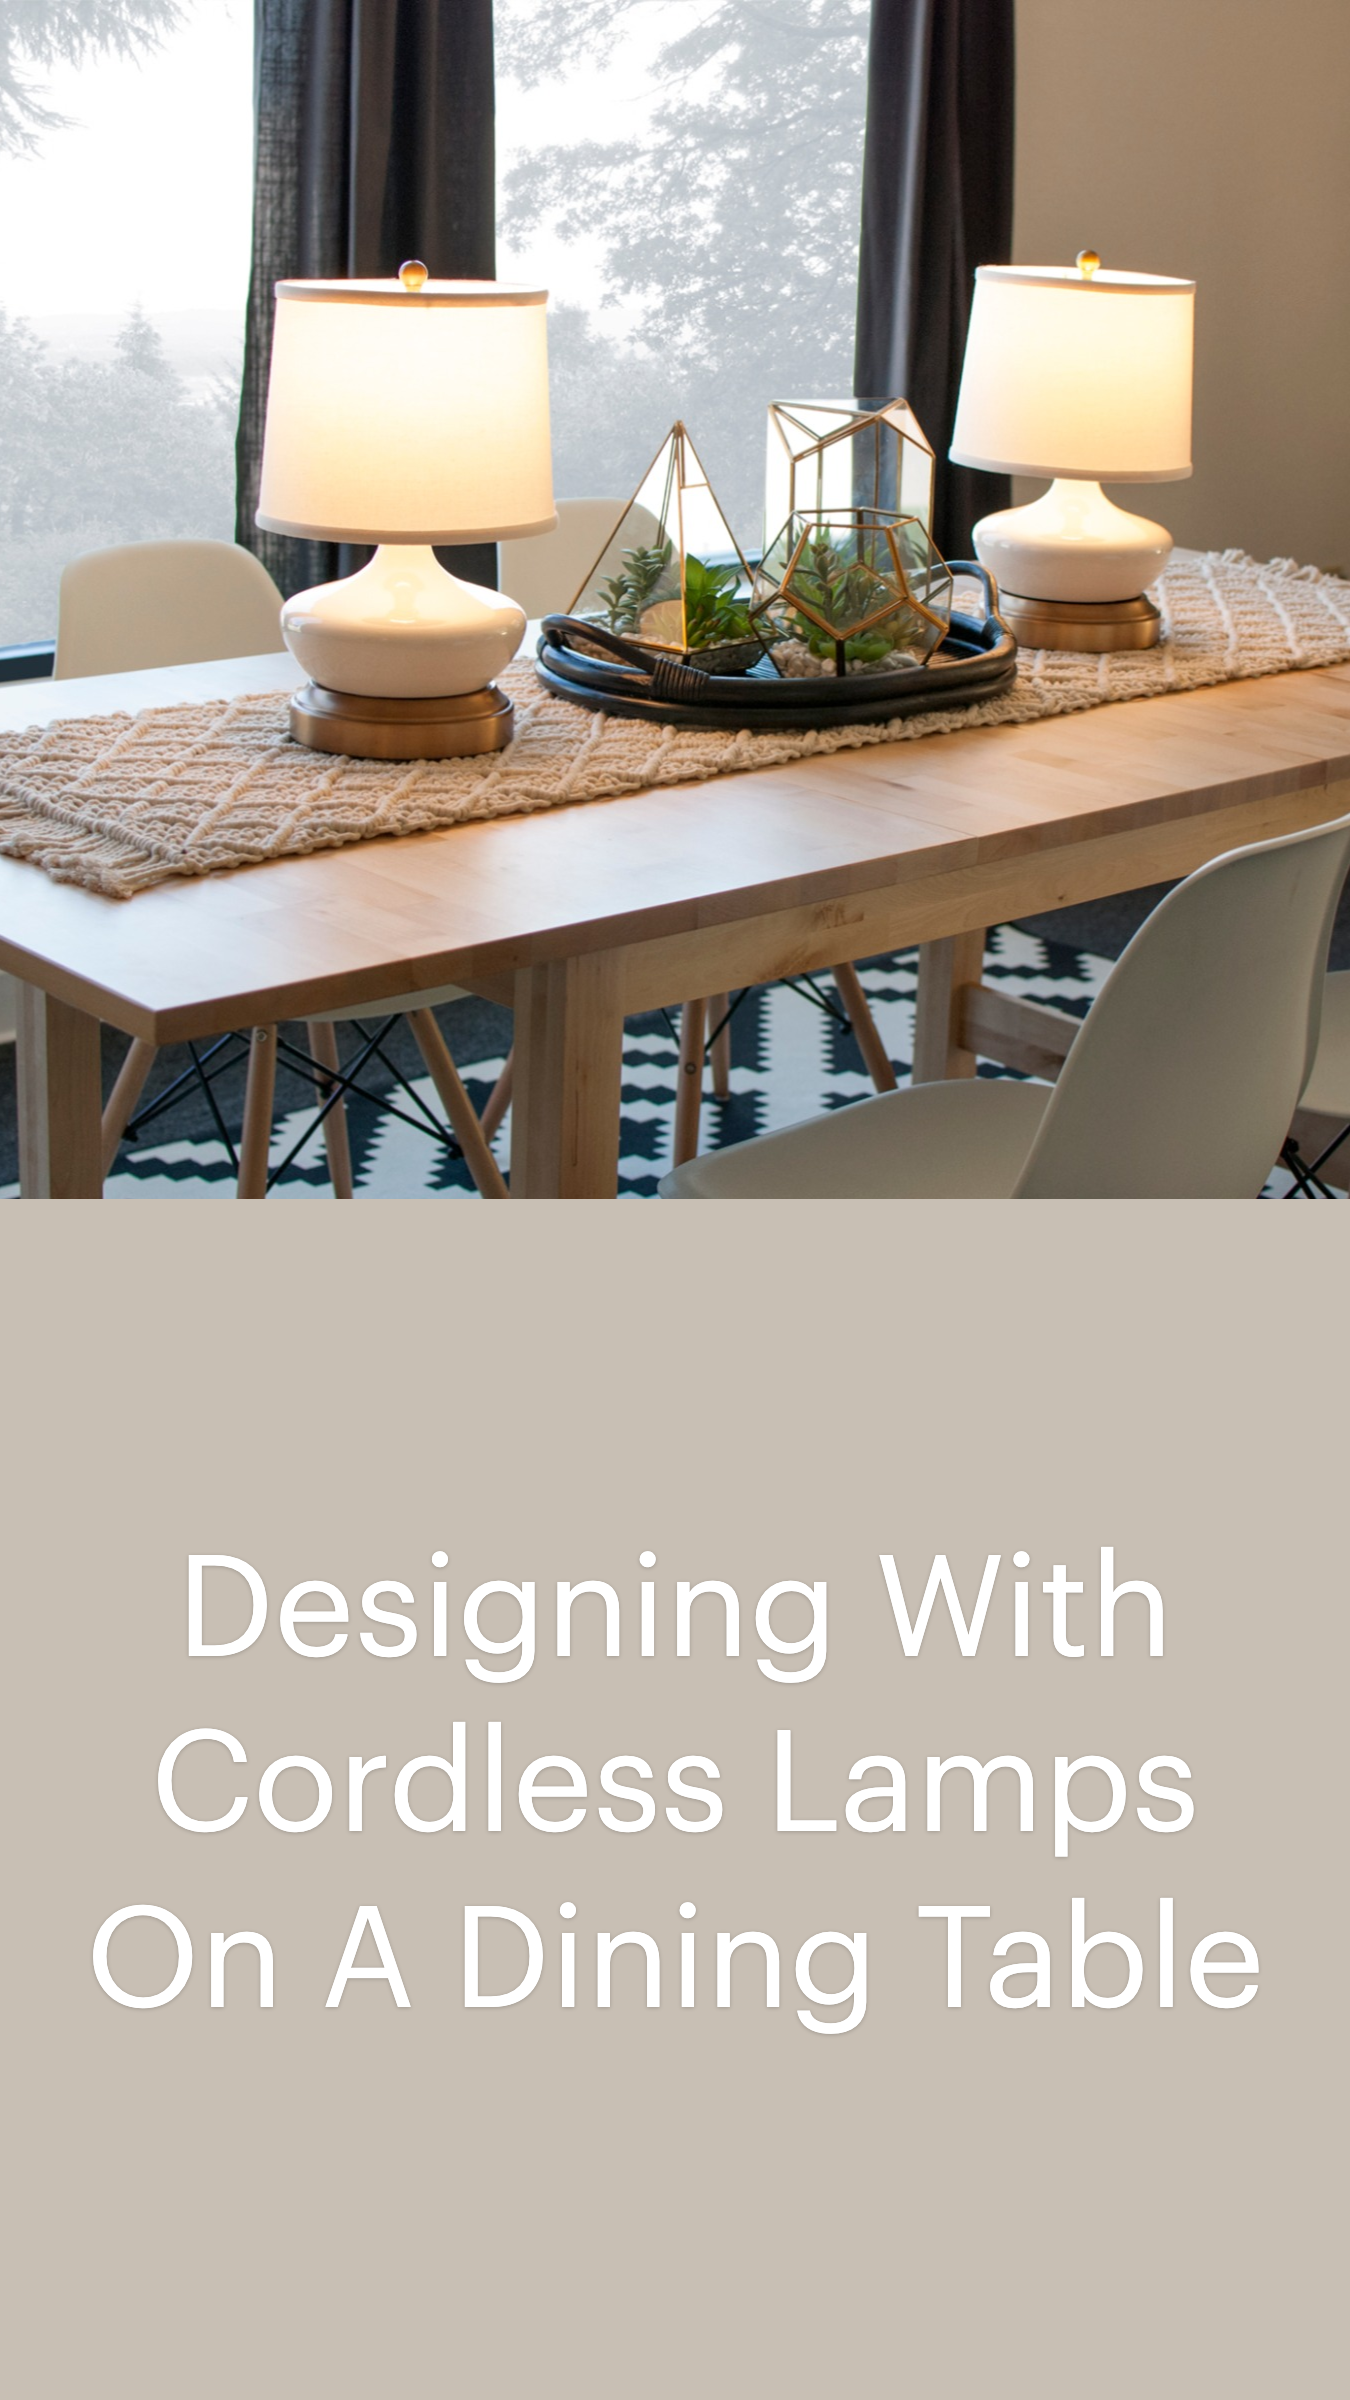 8 dining room cordless lamps ideas